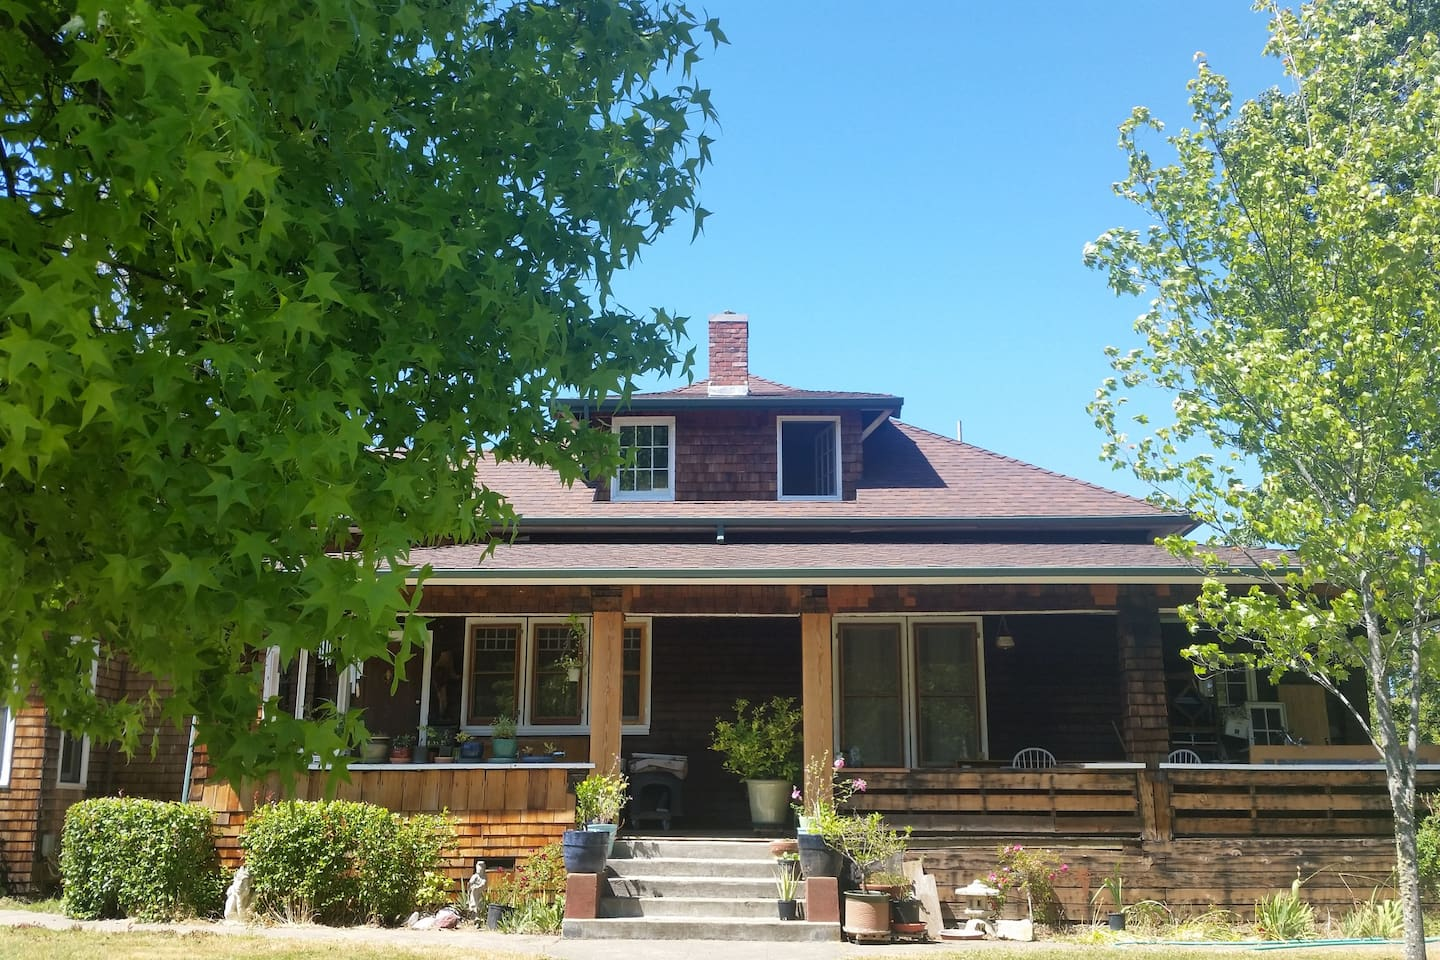 1905 craftsman home built for  Captain Selfridge president of the Union Lumber Company.